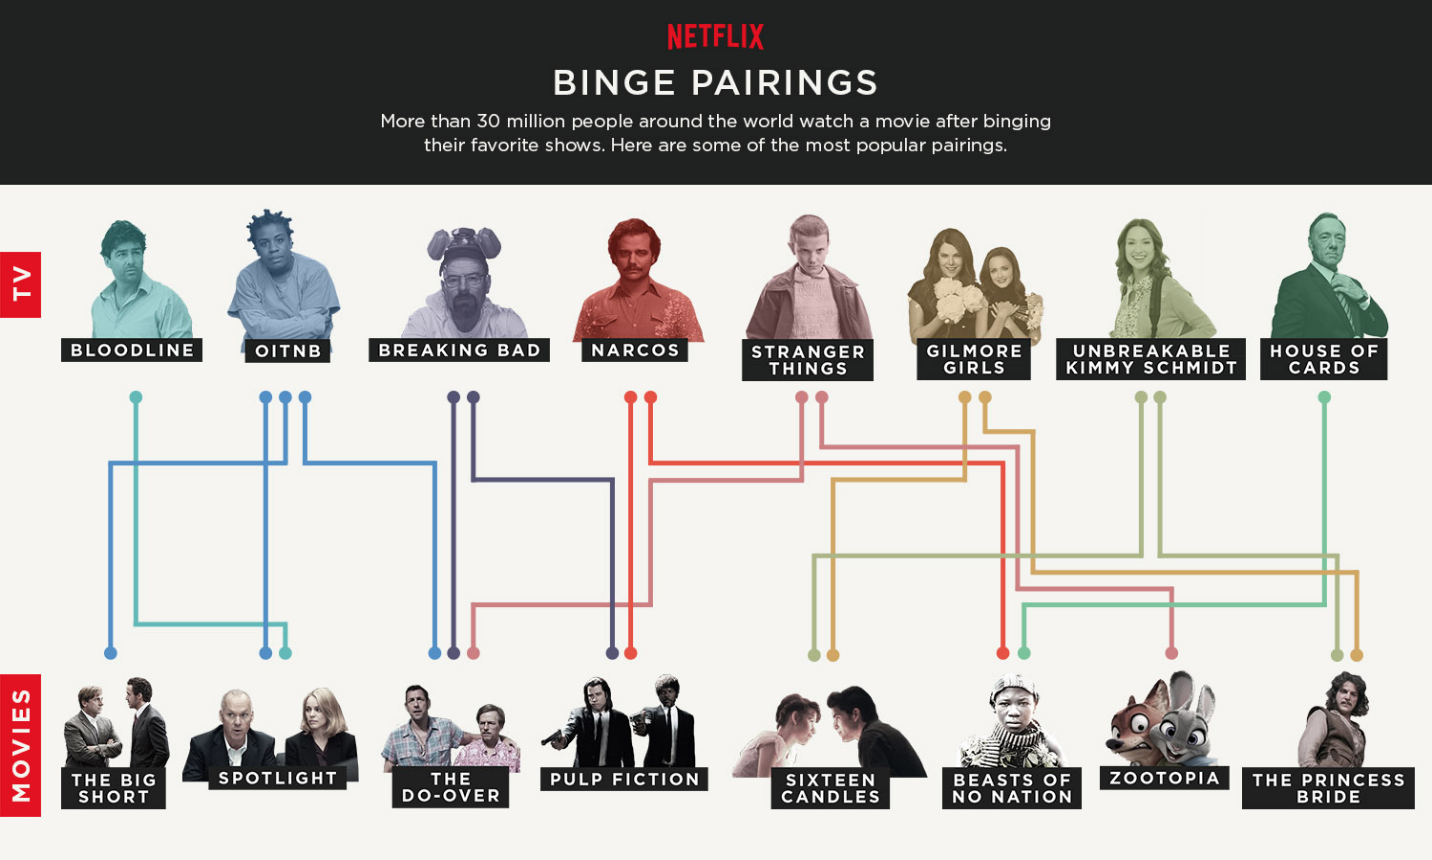 Netflix's binge pairings infographic shows the most popular pairings between shows binge-watched on the streaming service and the movies watched subsequently.